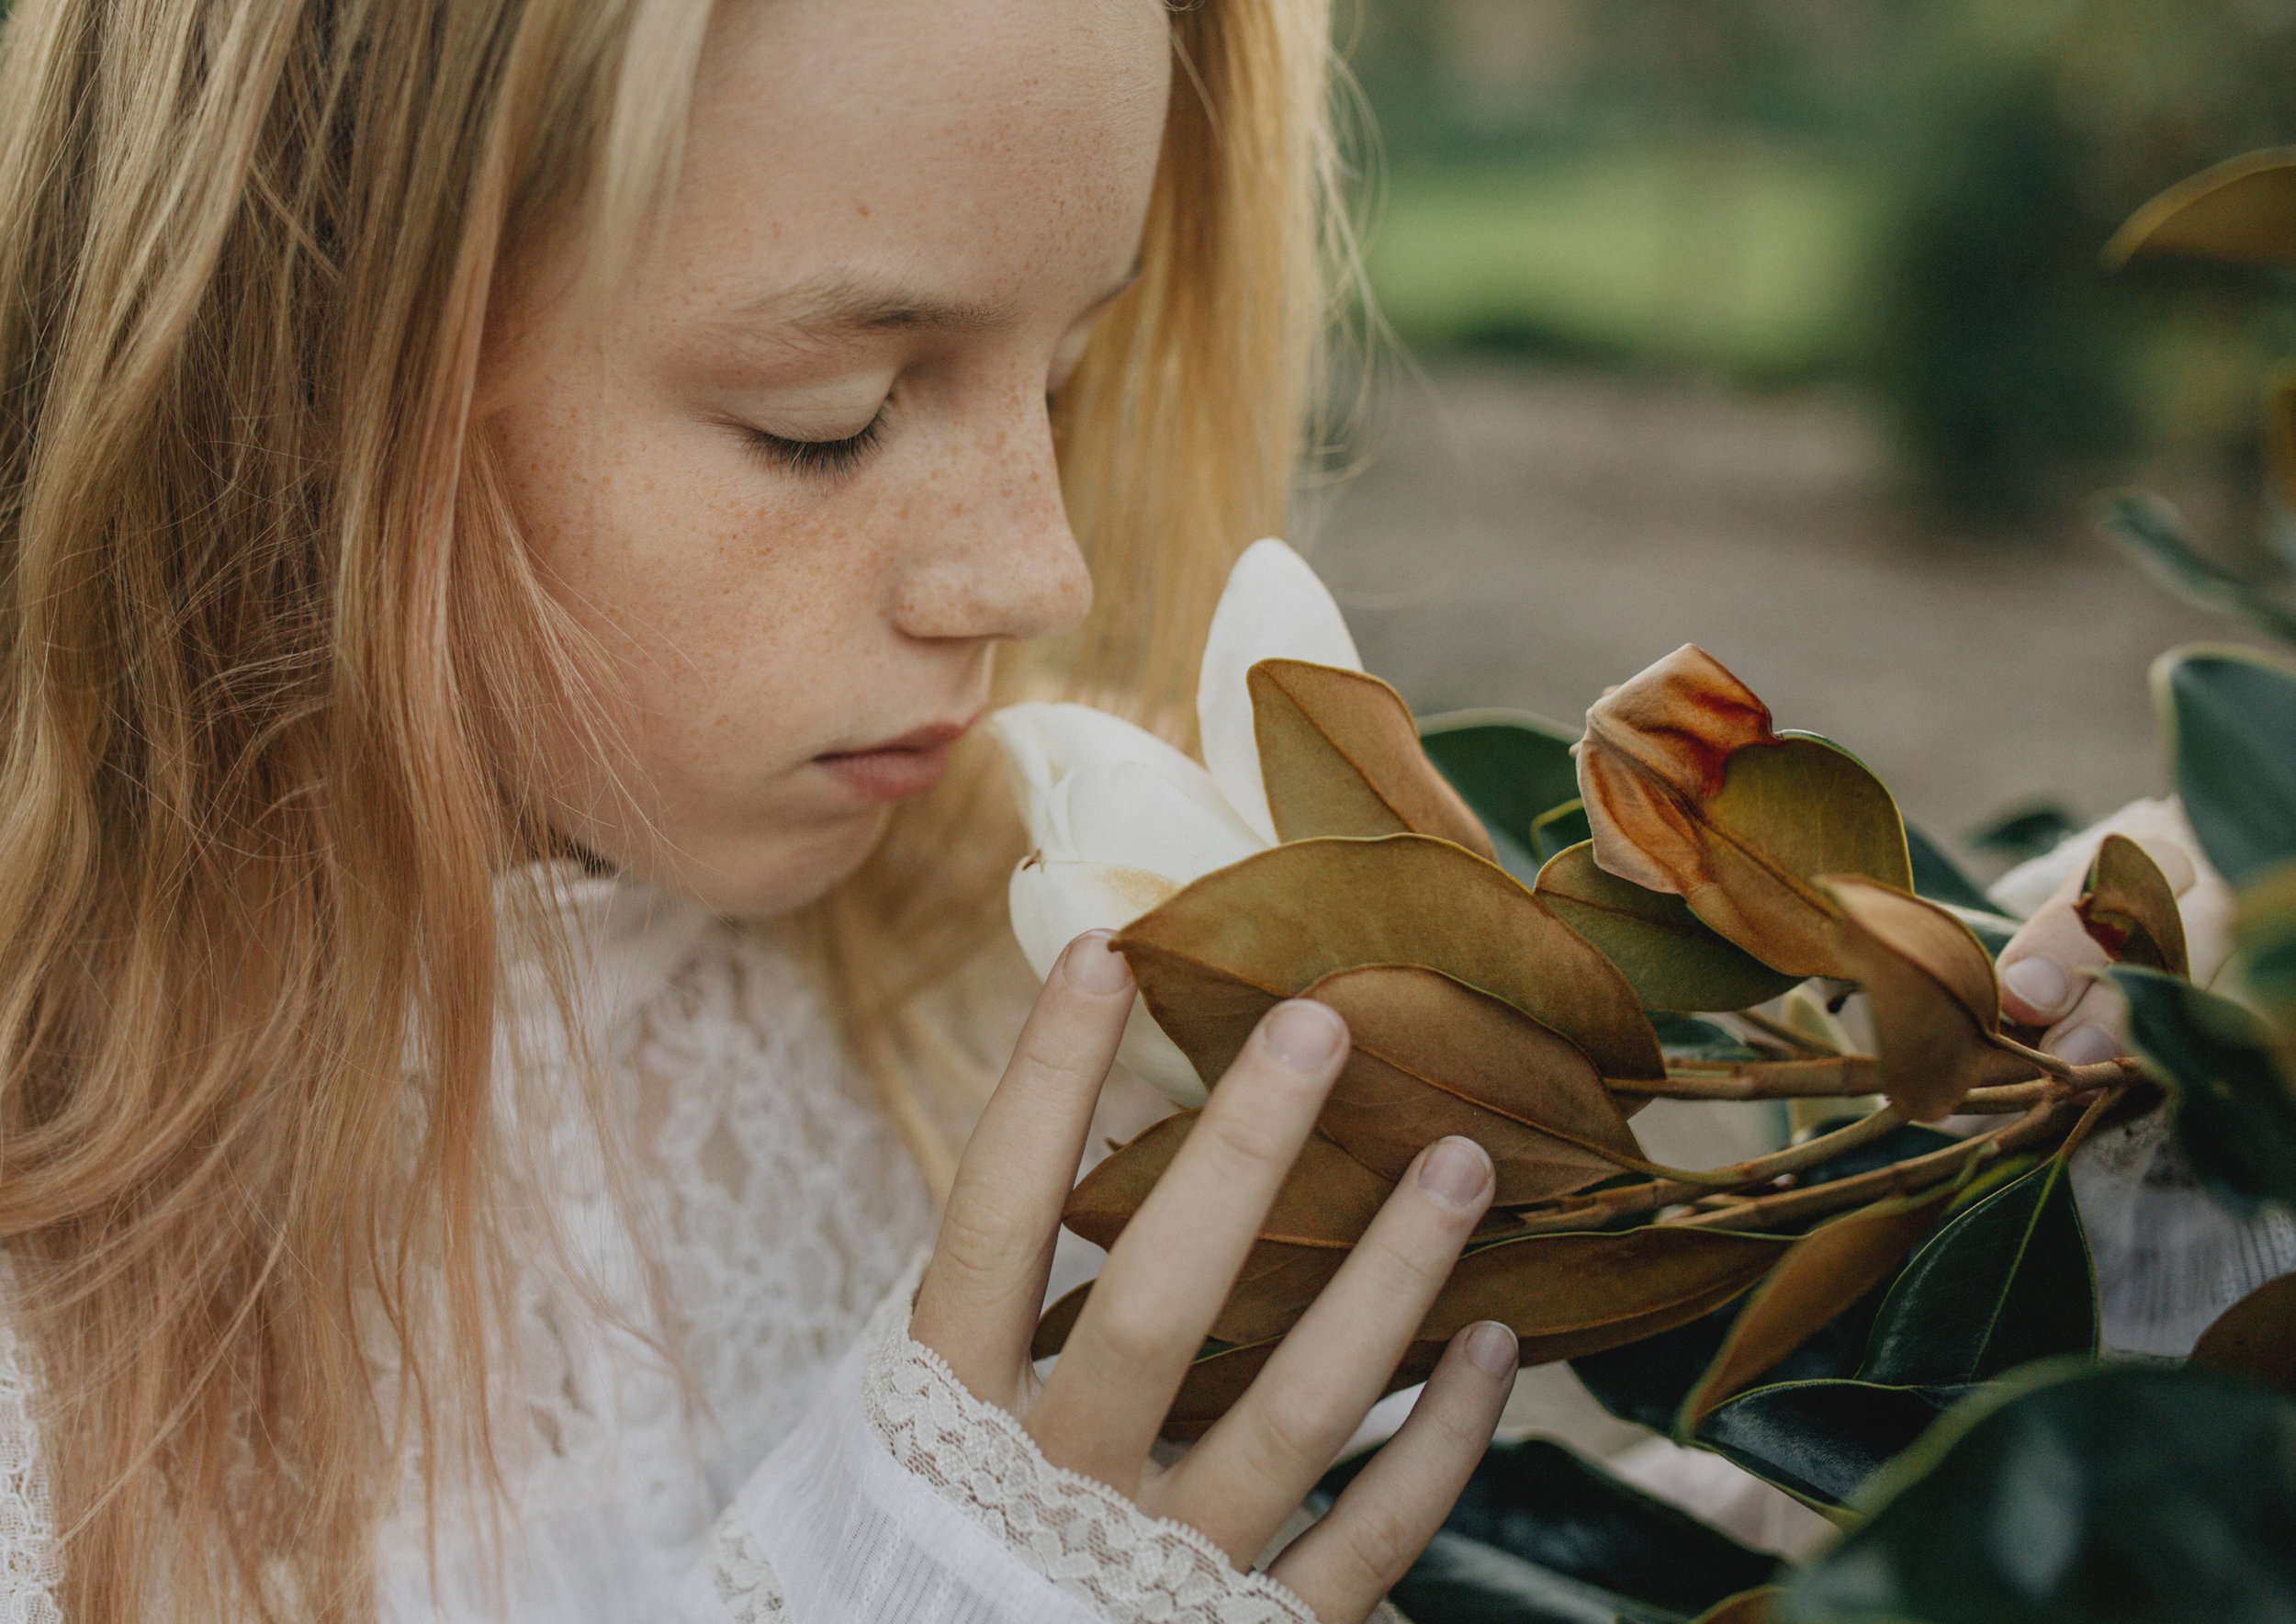 Tween girl smelling Magnolia flower